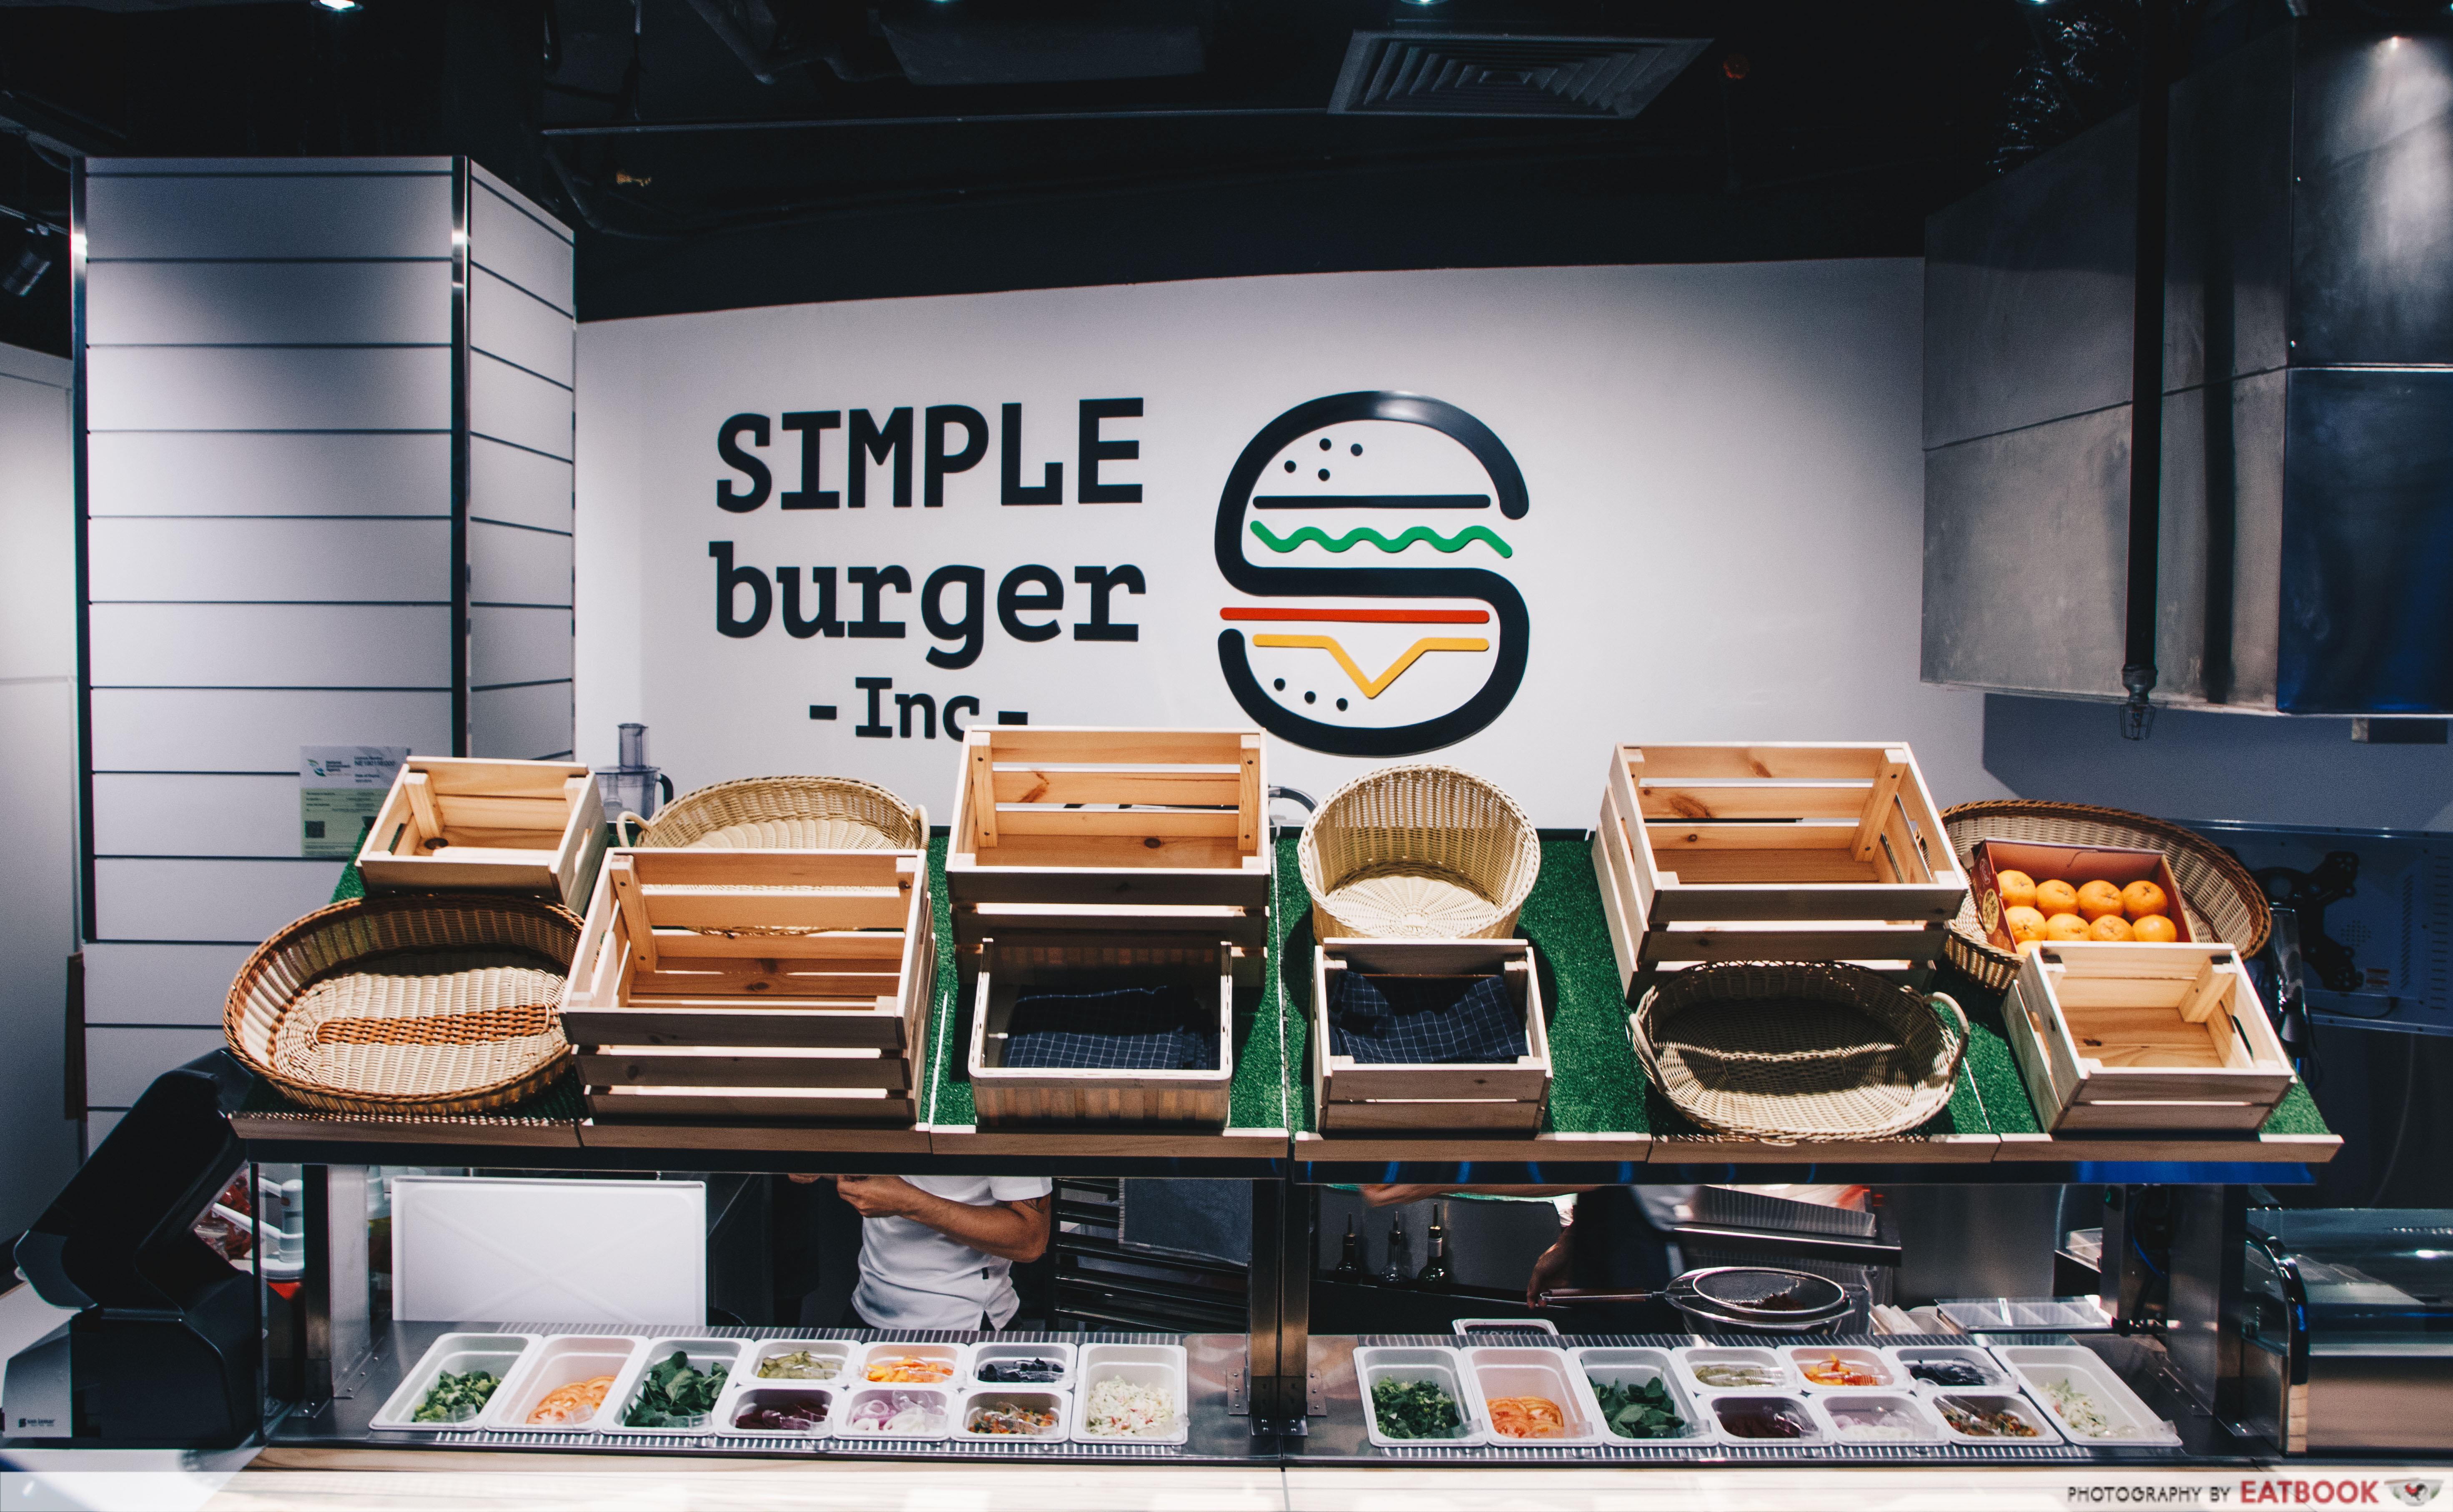 SIMPLEburger Inc. ambience